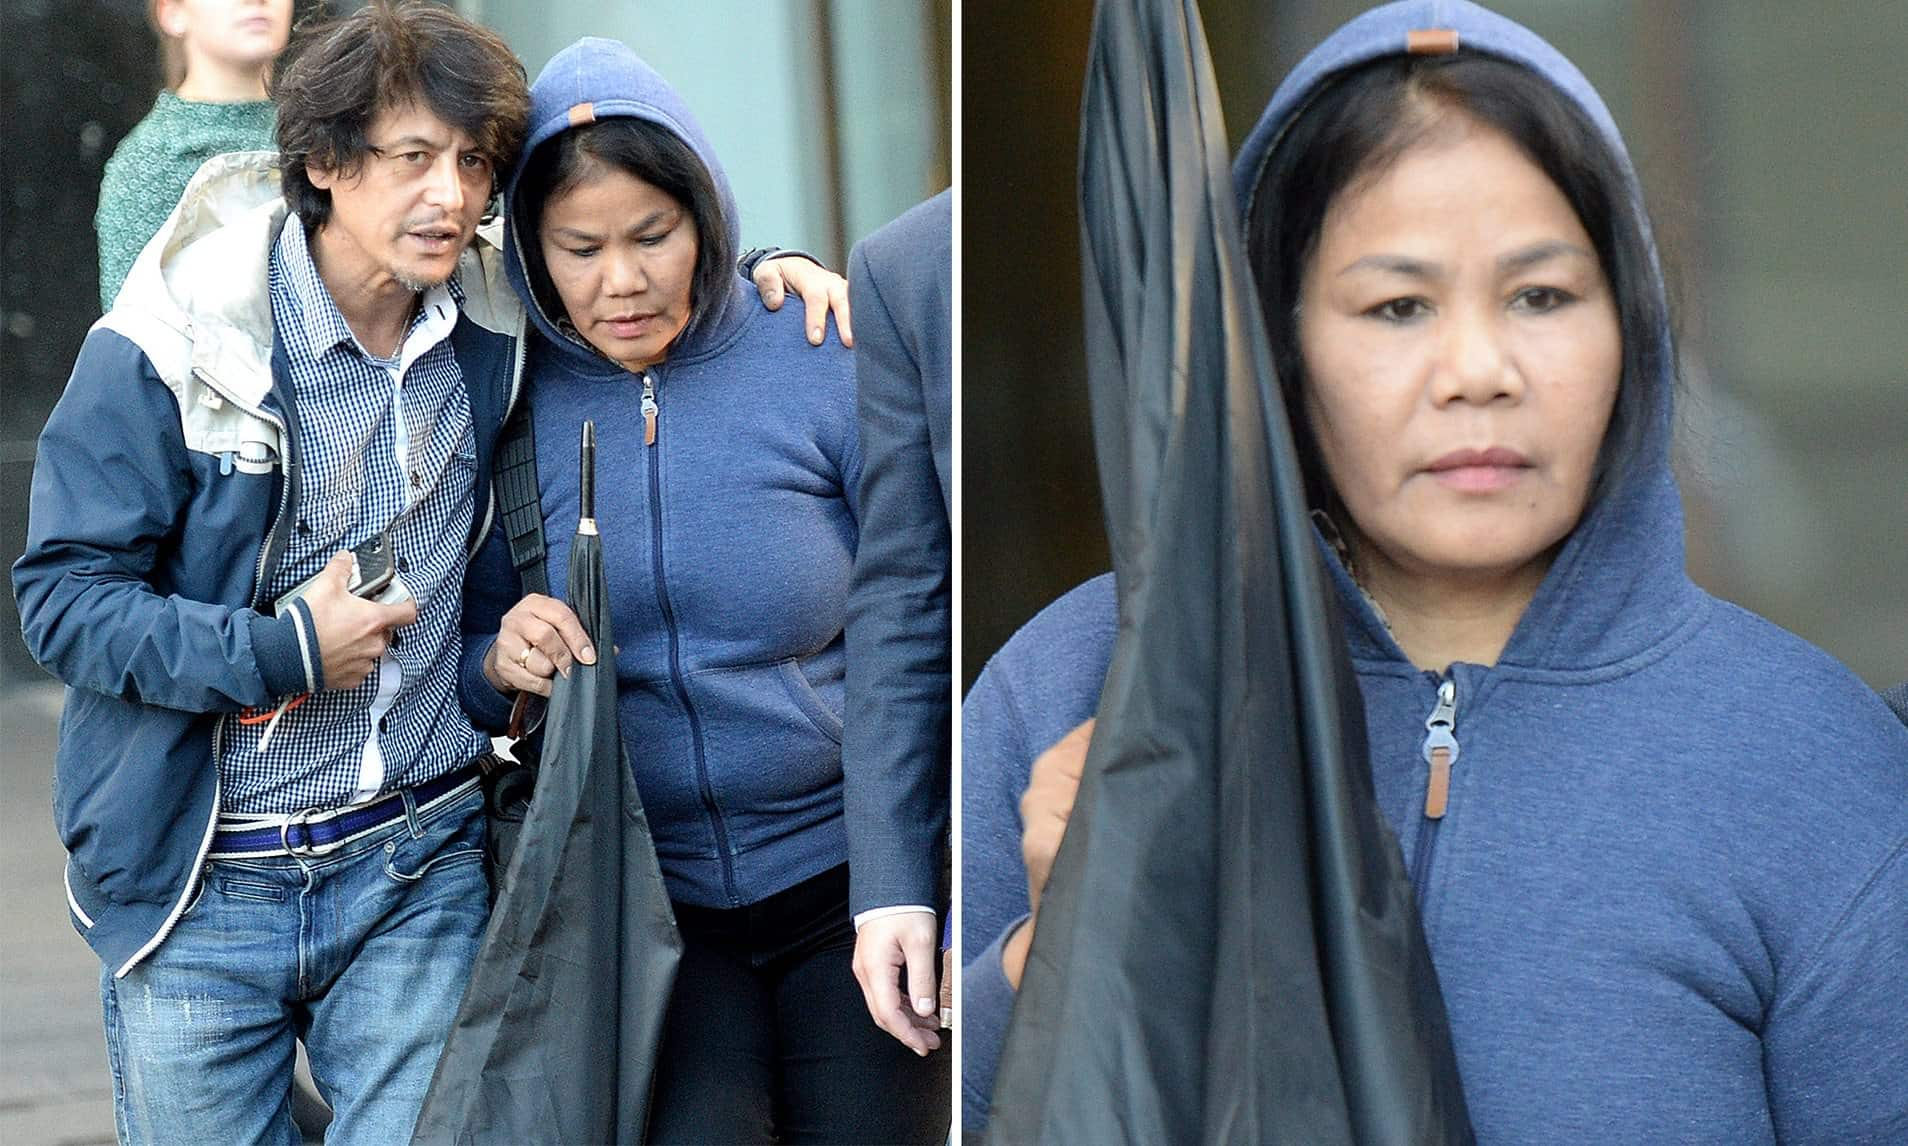 Woman accused of keeping two Thai women as sex slaves The woman accused of keeping two Thai women as slaves 'and forcing them to perform sex work